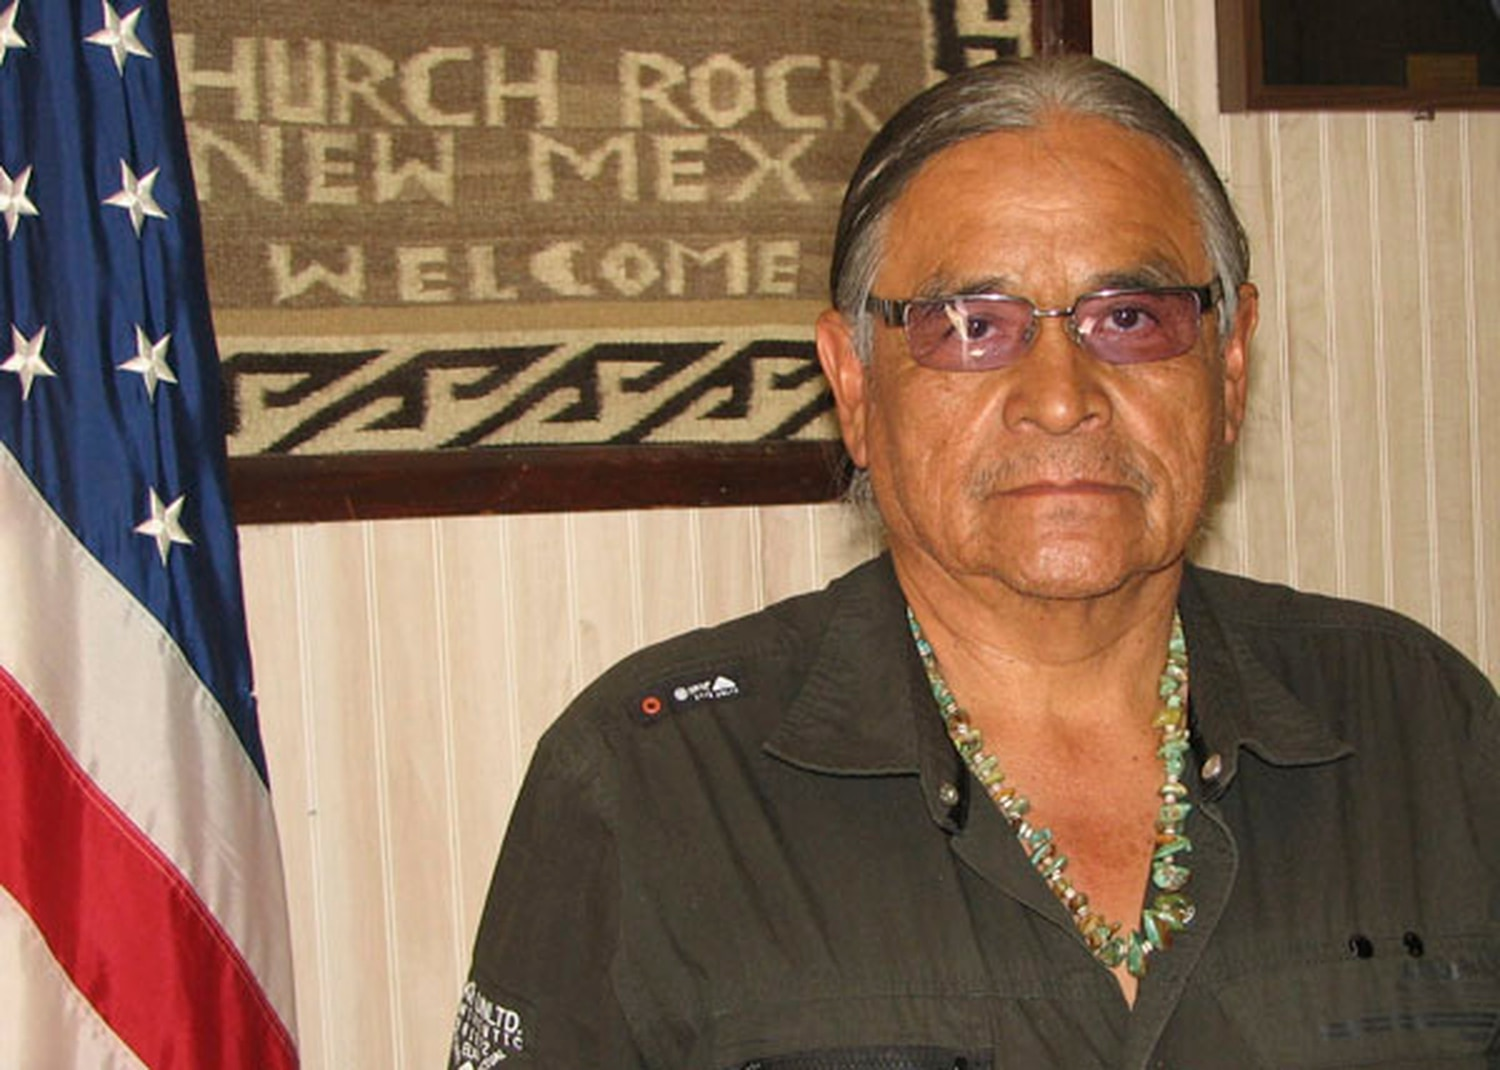 Navajo medicine man Johnny Henry Jr. stresses the importance of integrating traditional beliefs into the healing process.